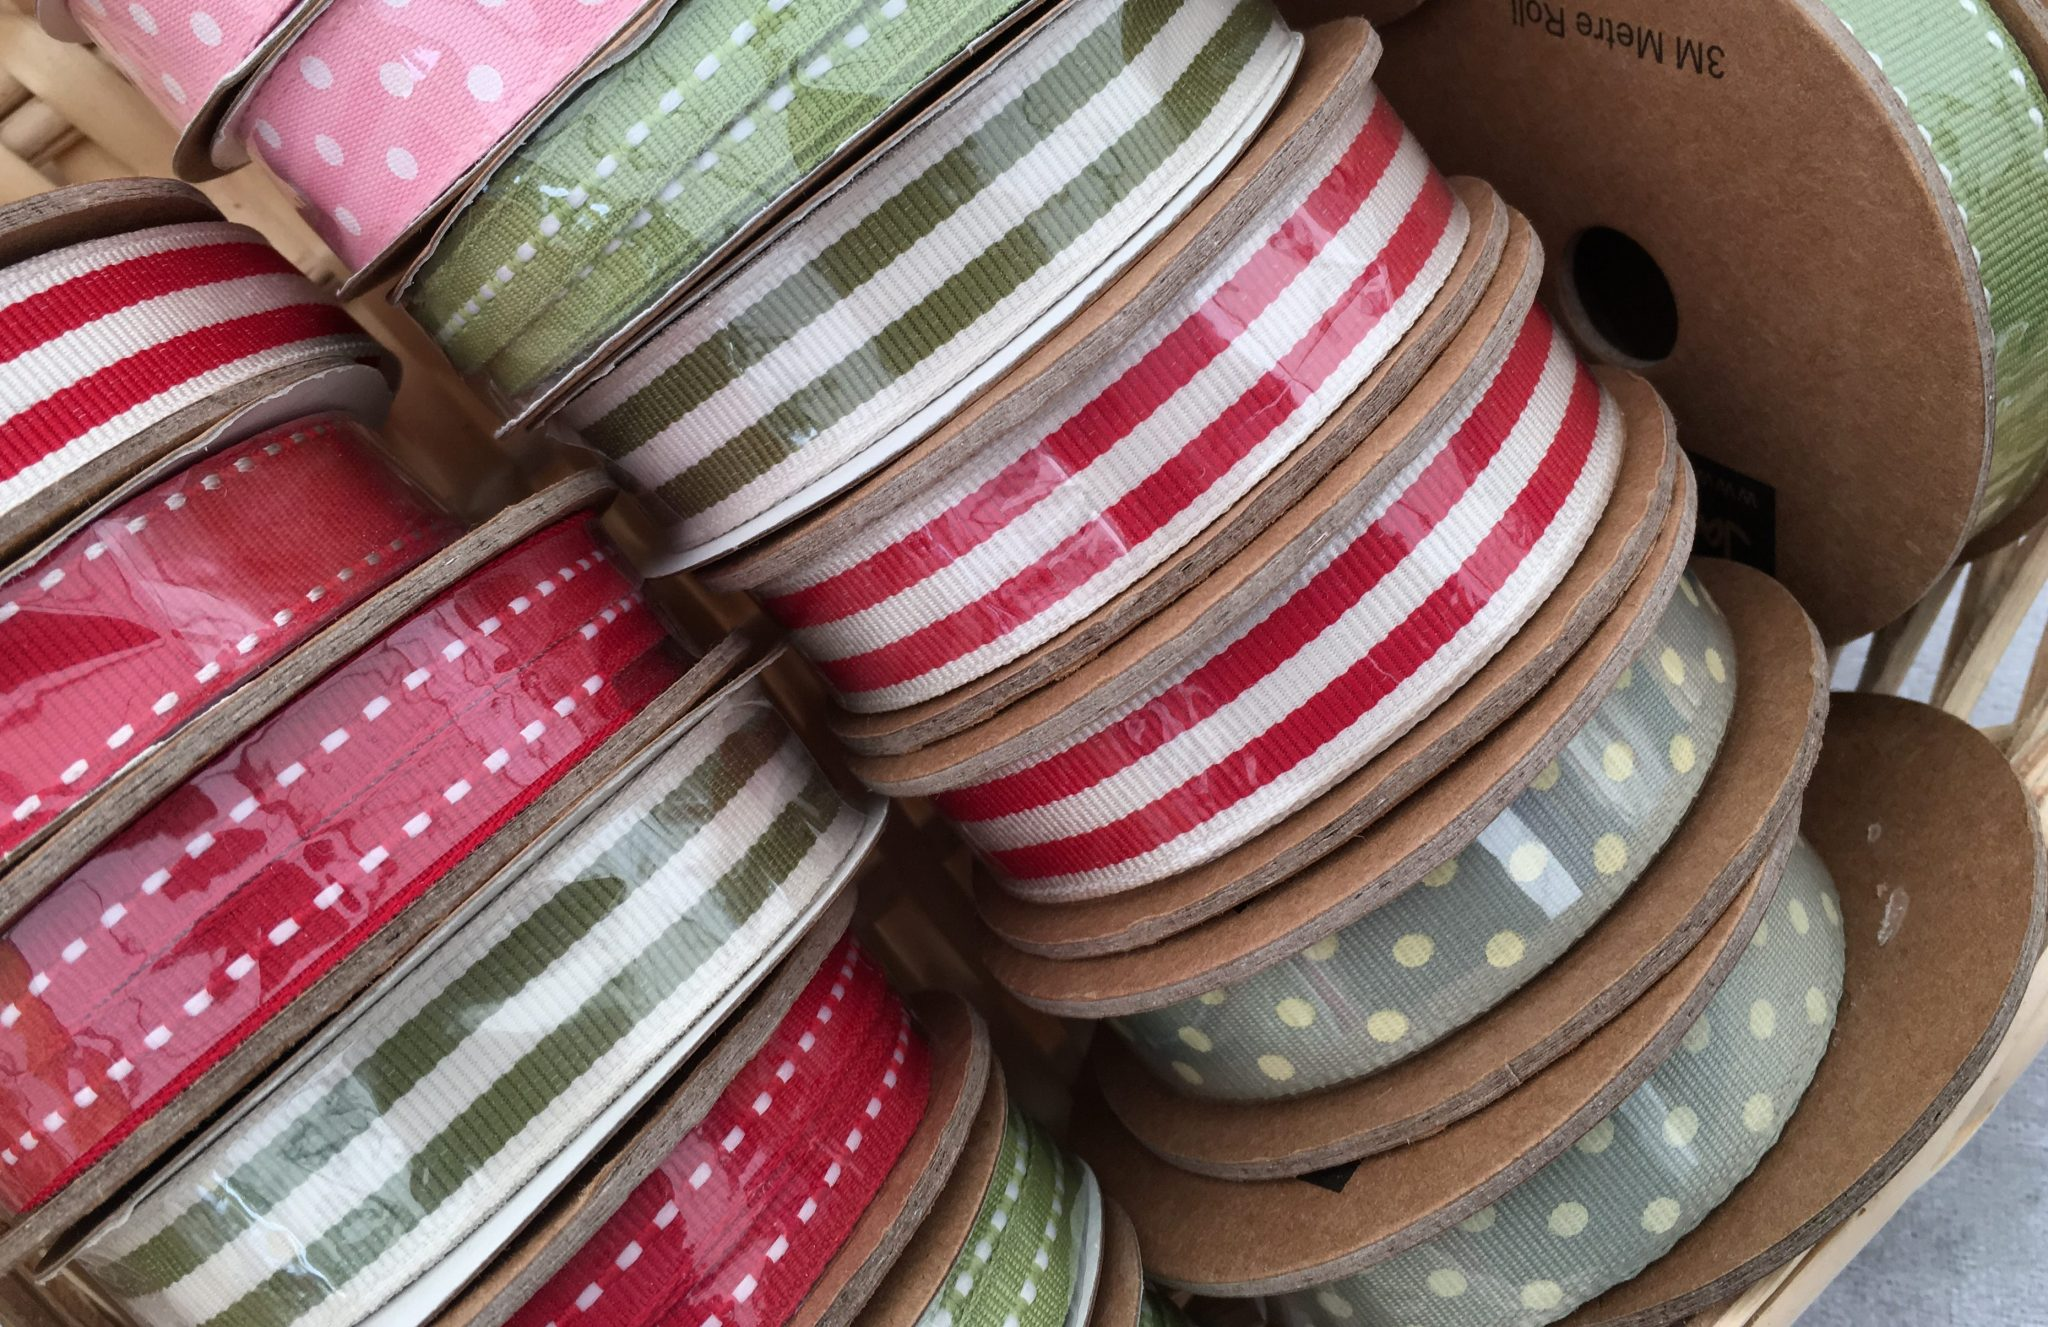 My favourite Jane Means ribbons